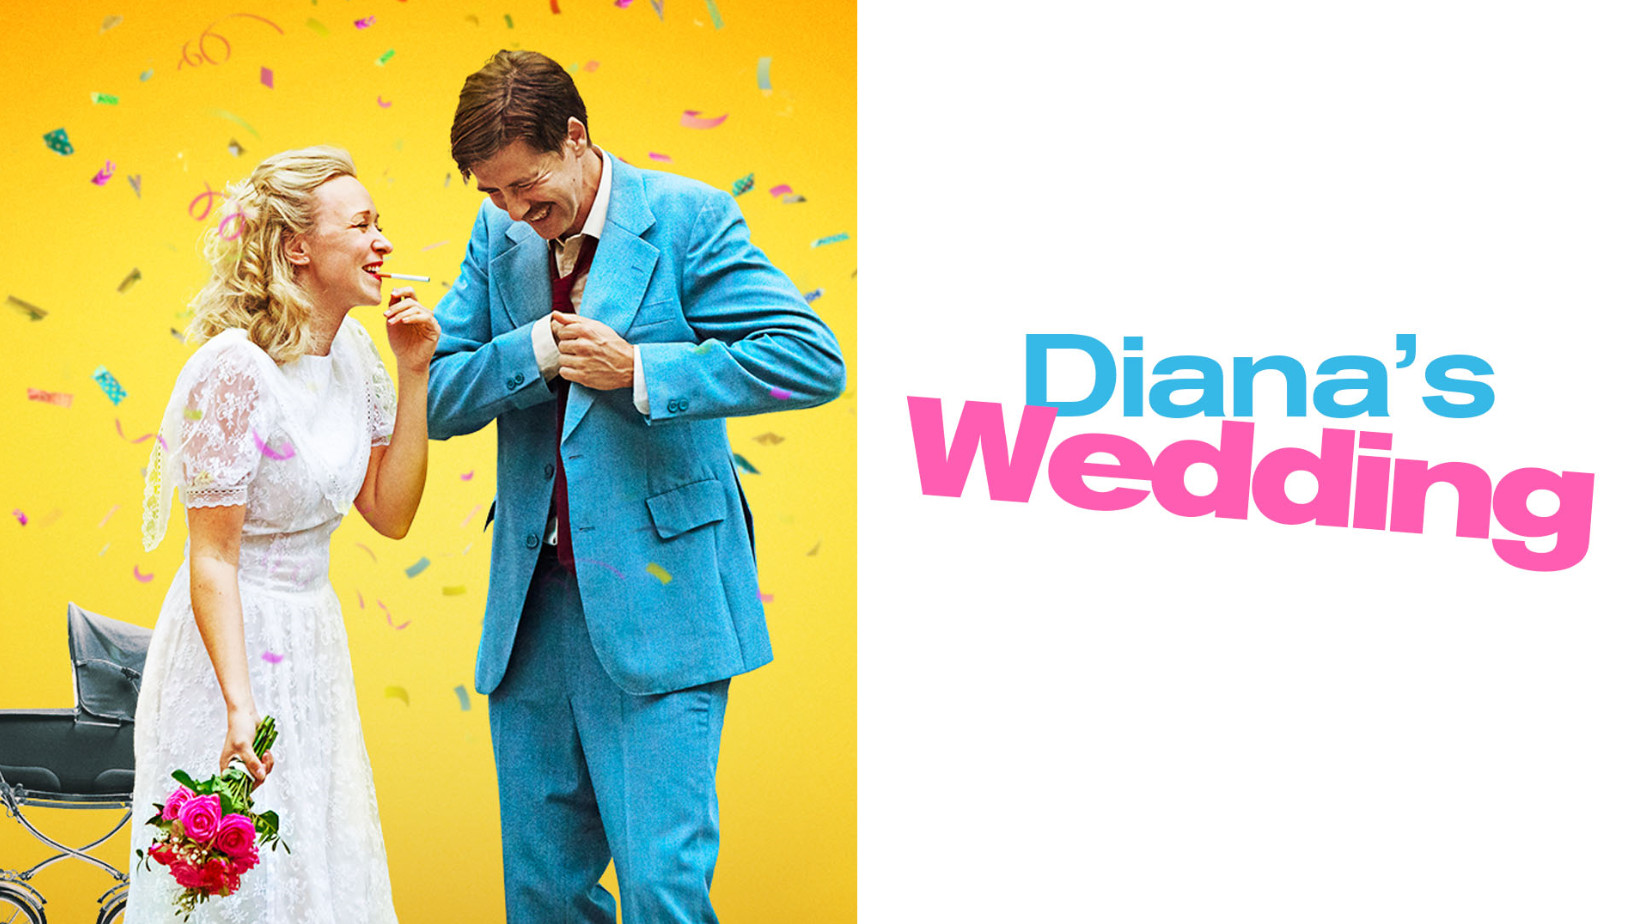 First look at poster & trailer for romantic comedy 'diana's wedding'